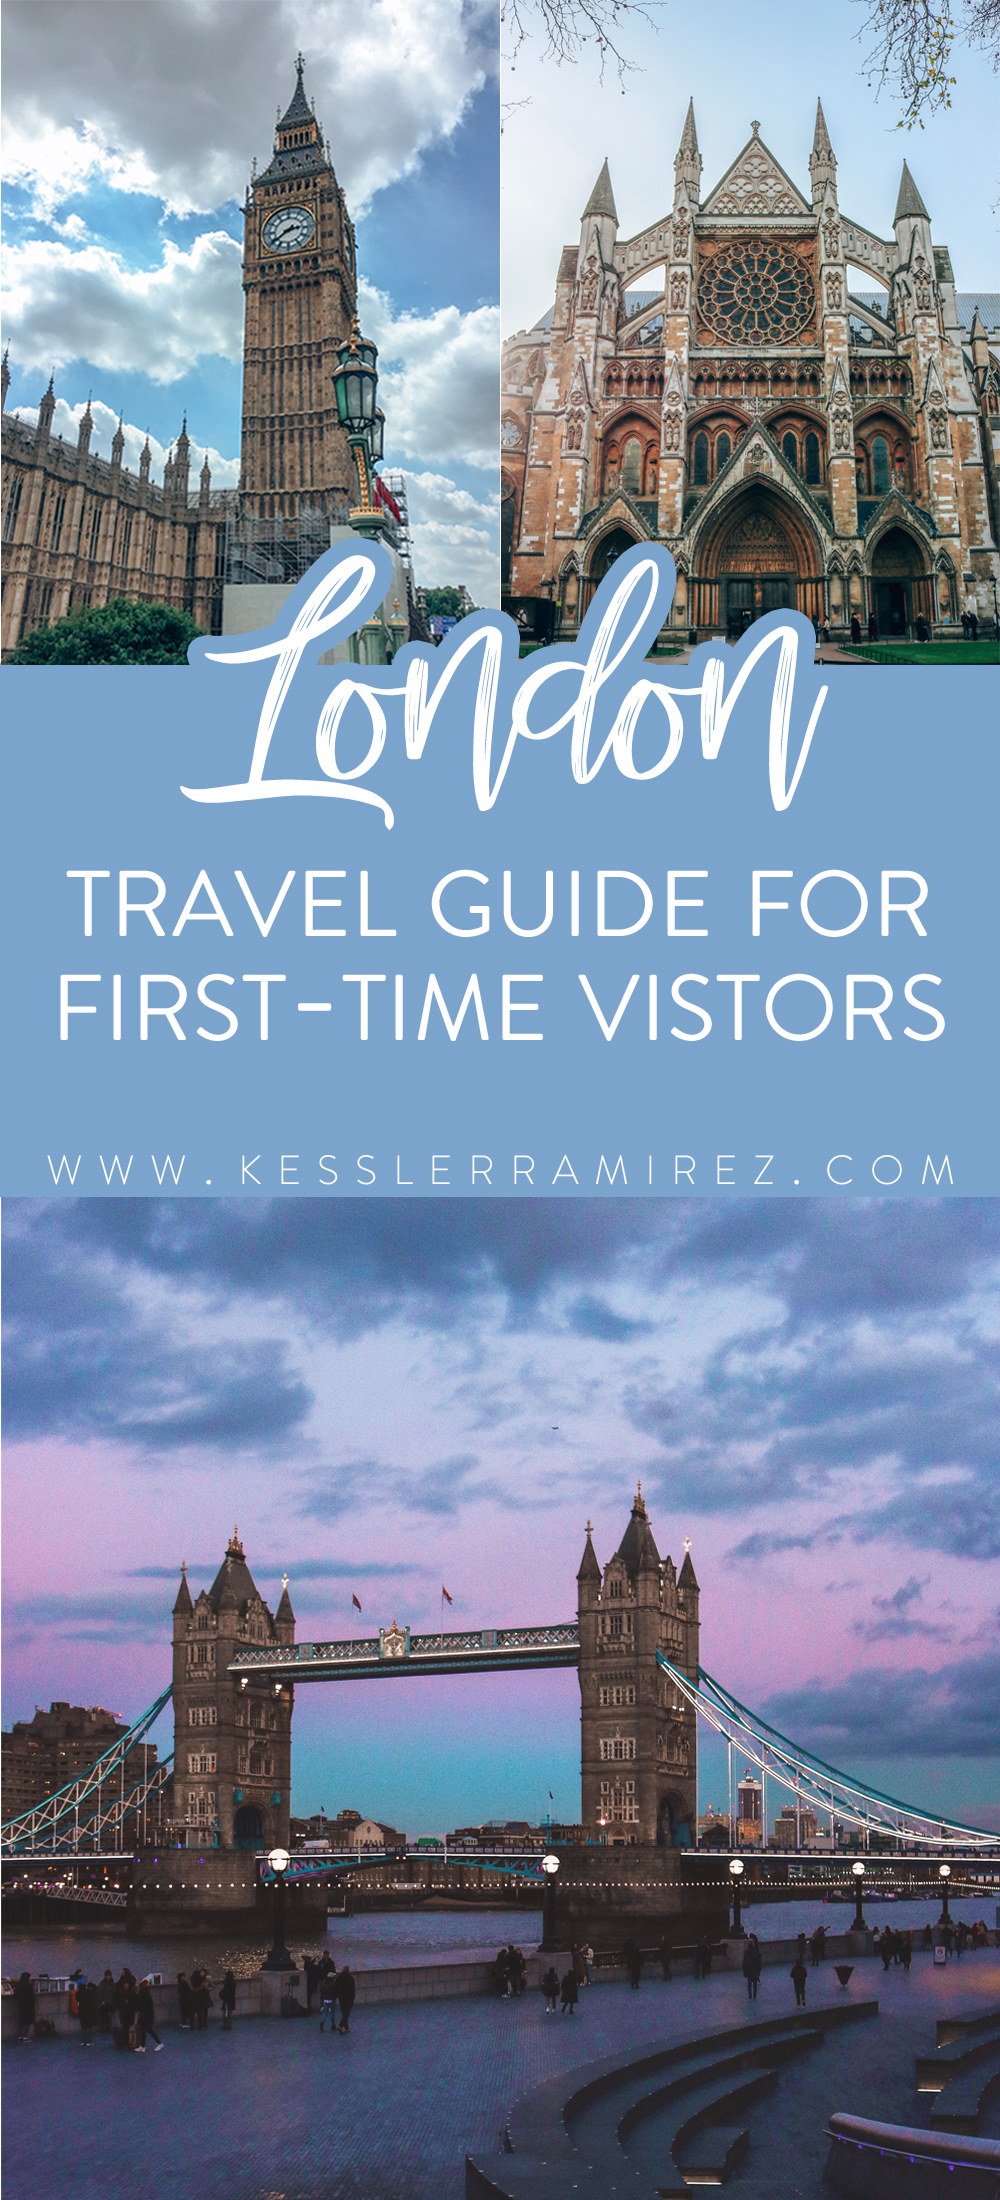 London Travel Guide for First-Time Visitors – Kessler Ramirez